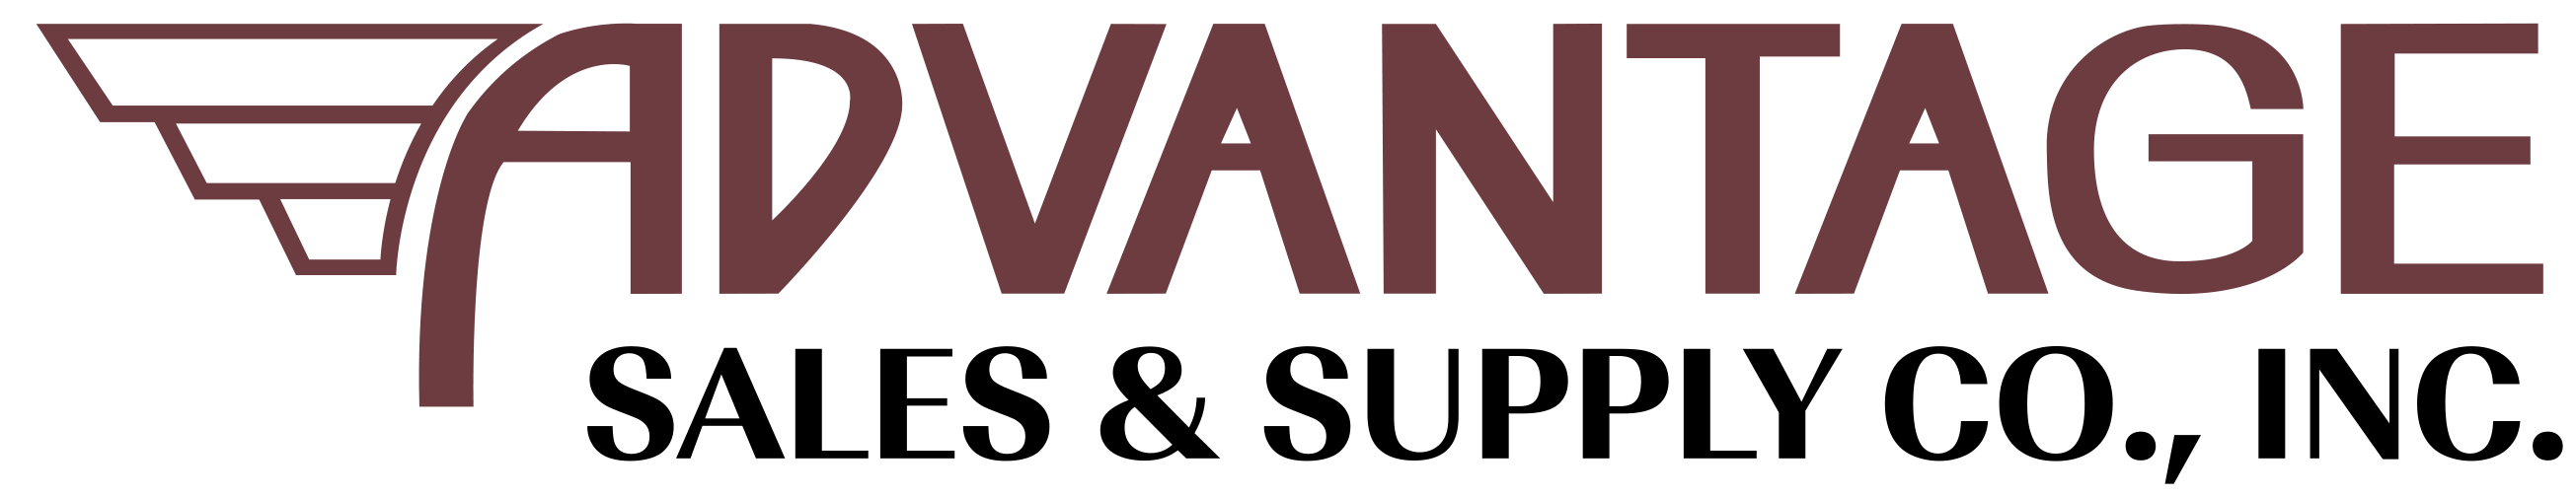 Advantage Sales & Supply, INC.